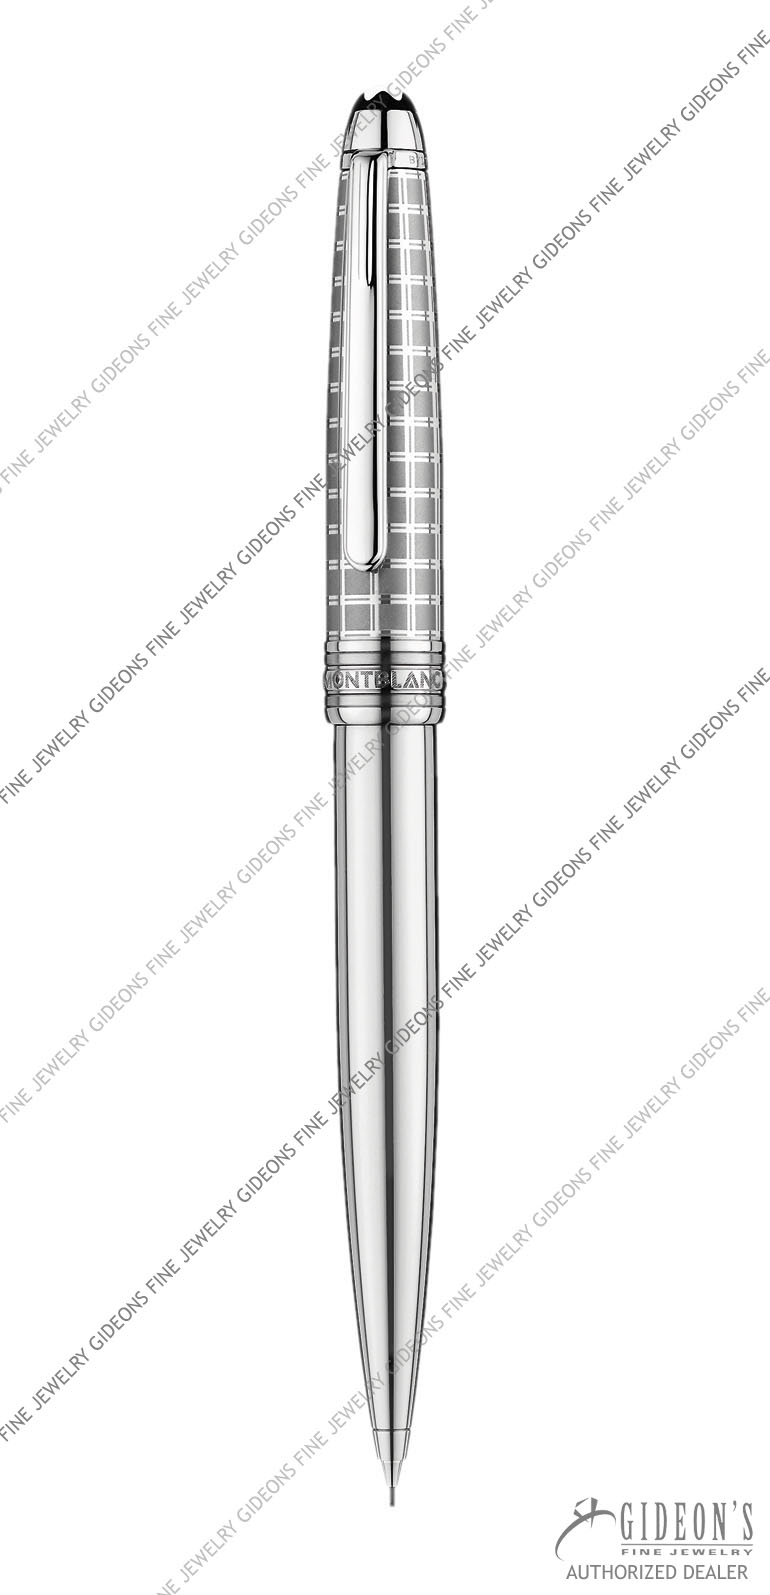 Montblanc Meisterstuck Solitaire M23865 (09947) Mechanical Pencil